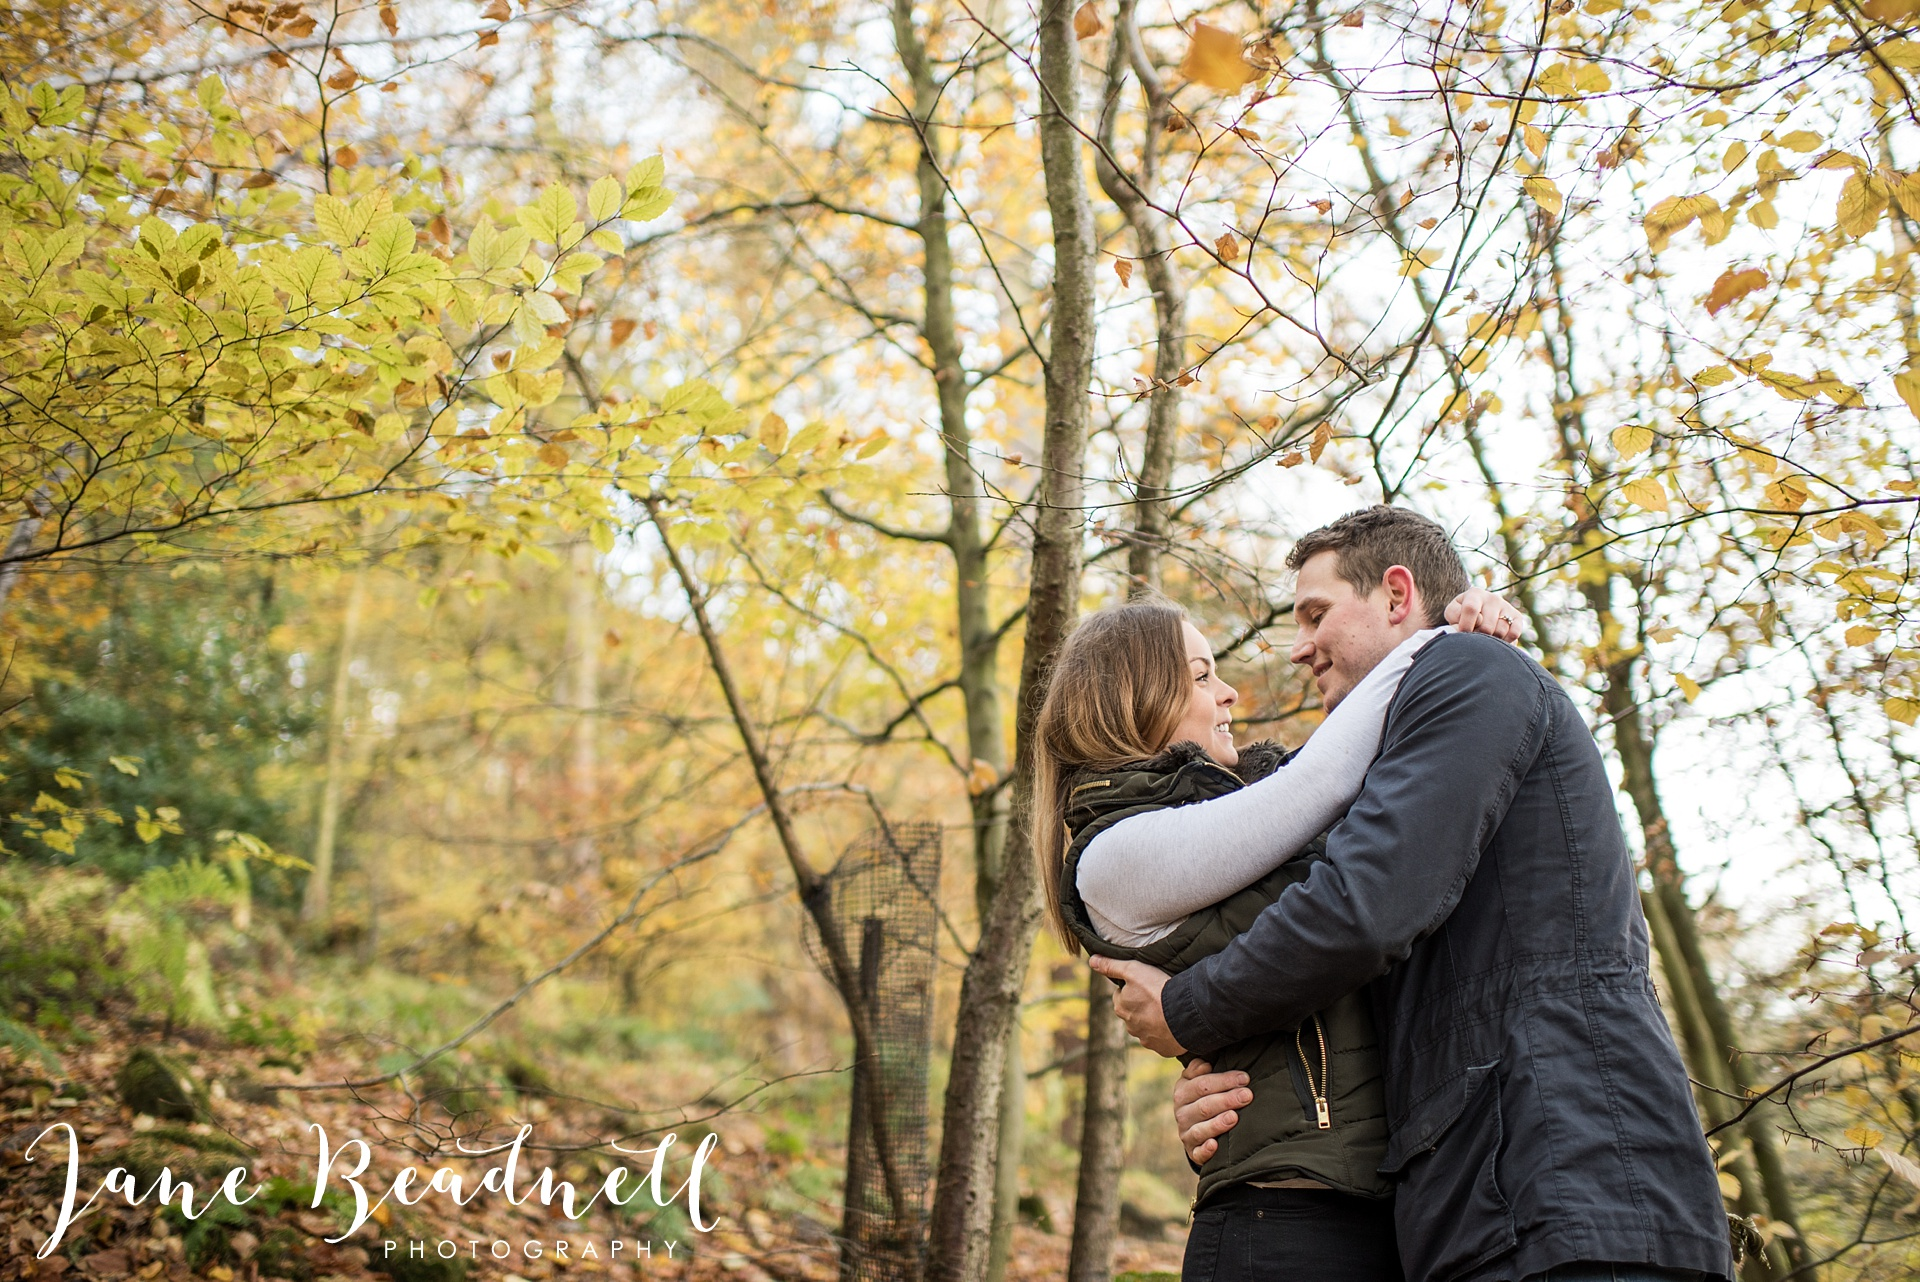 engagement-shoot-yorkshire-wedding-photographer-jane-beadnell-photography-uk-and-destination-wedding-photographer-engagement-shoot_0014